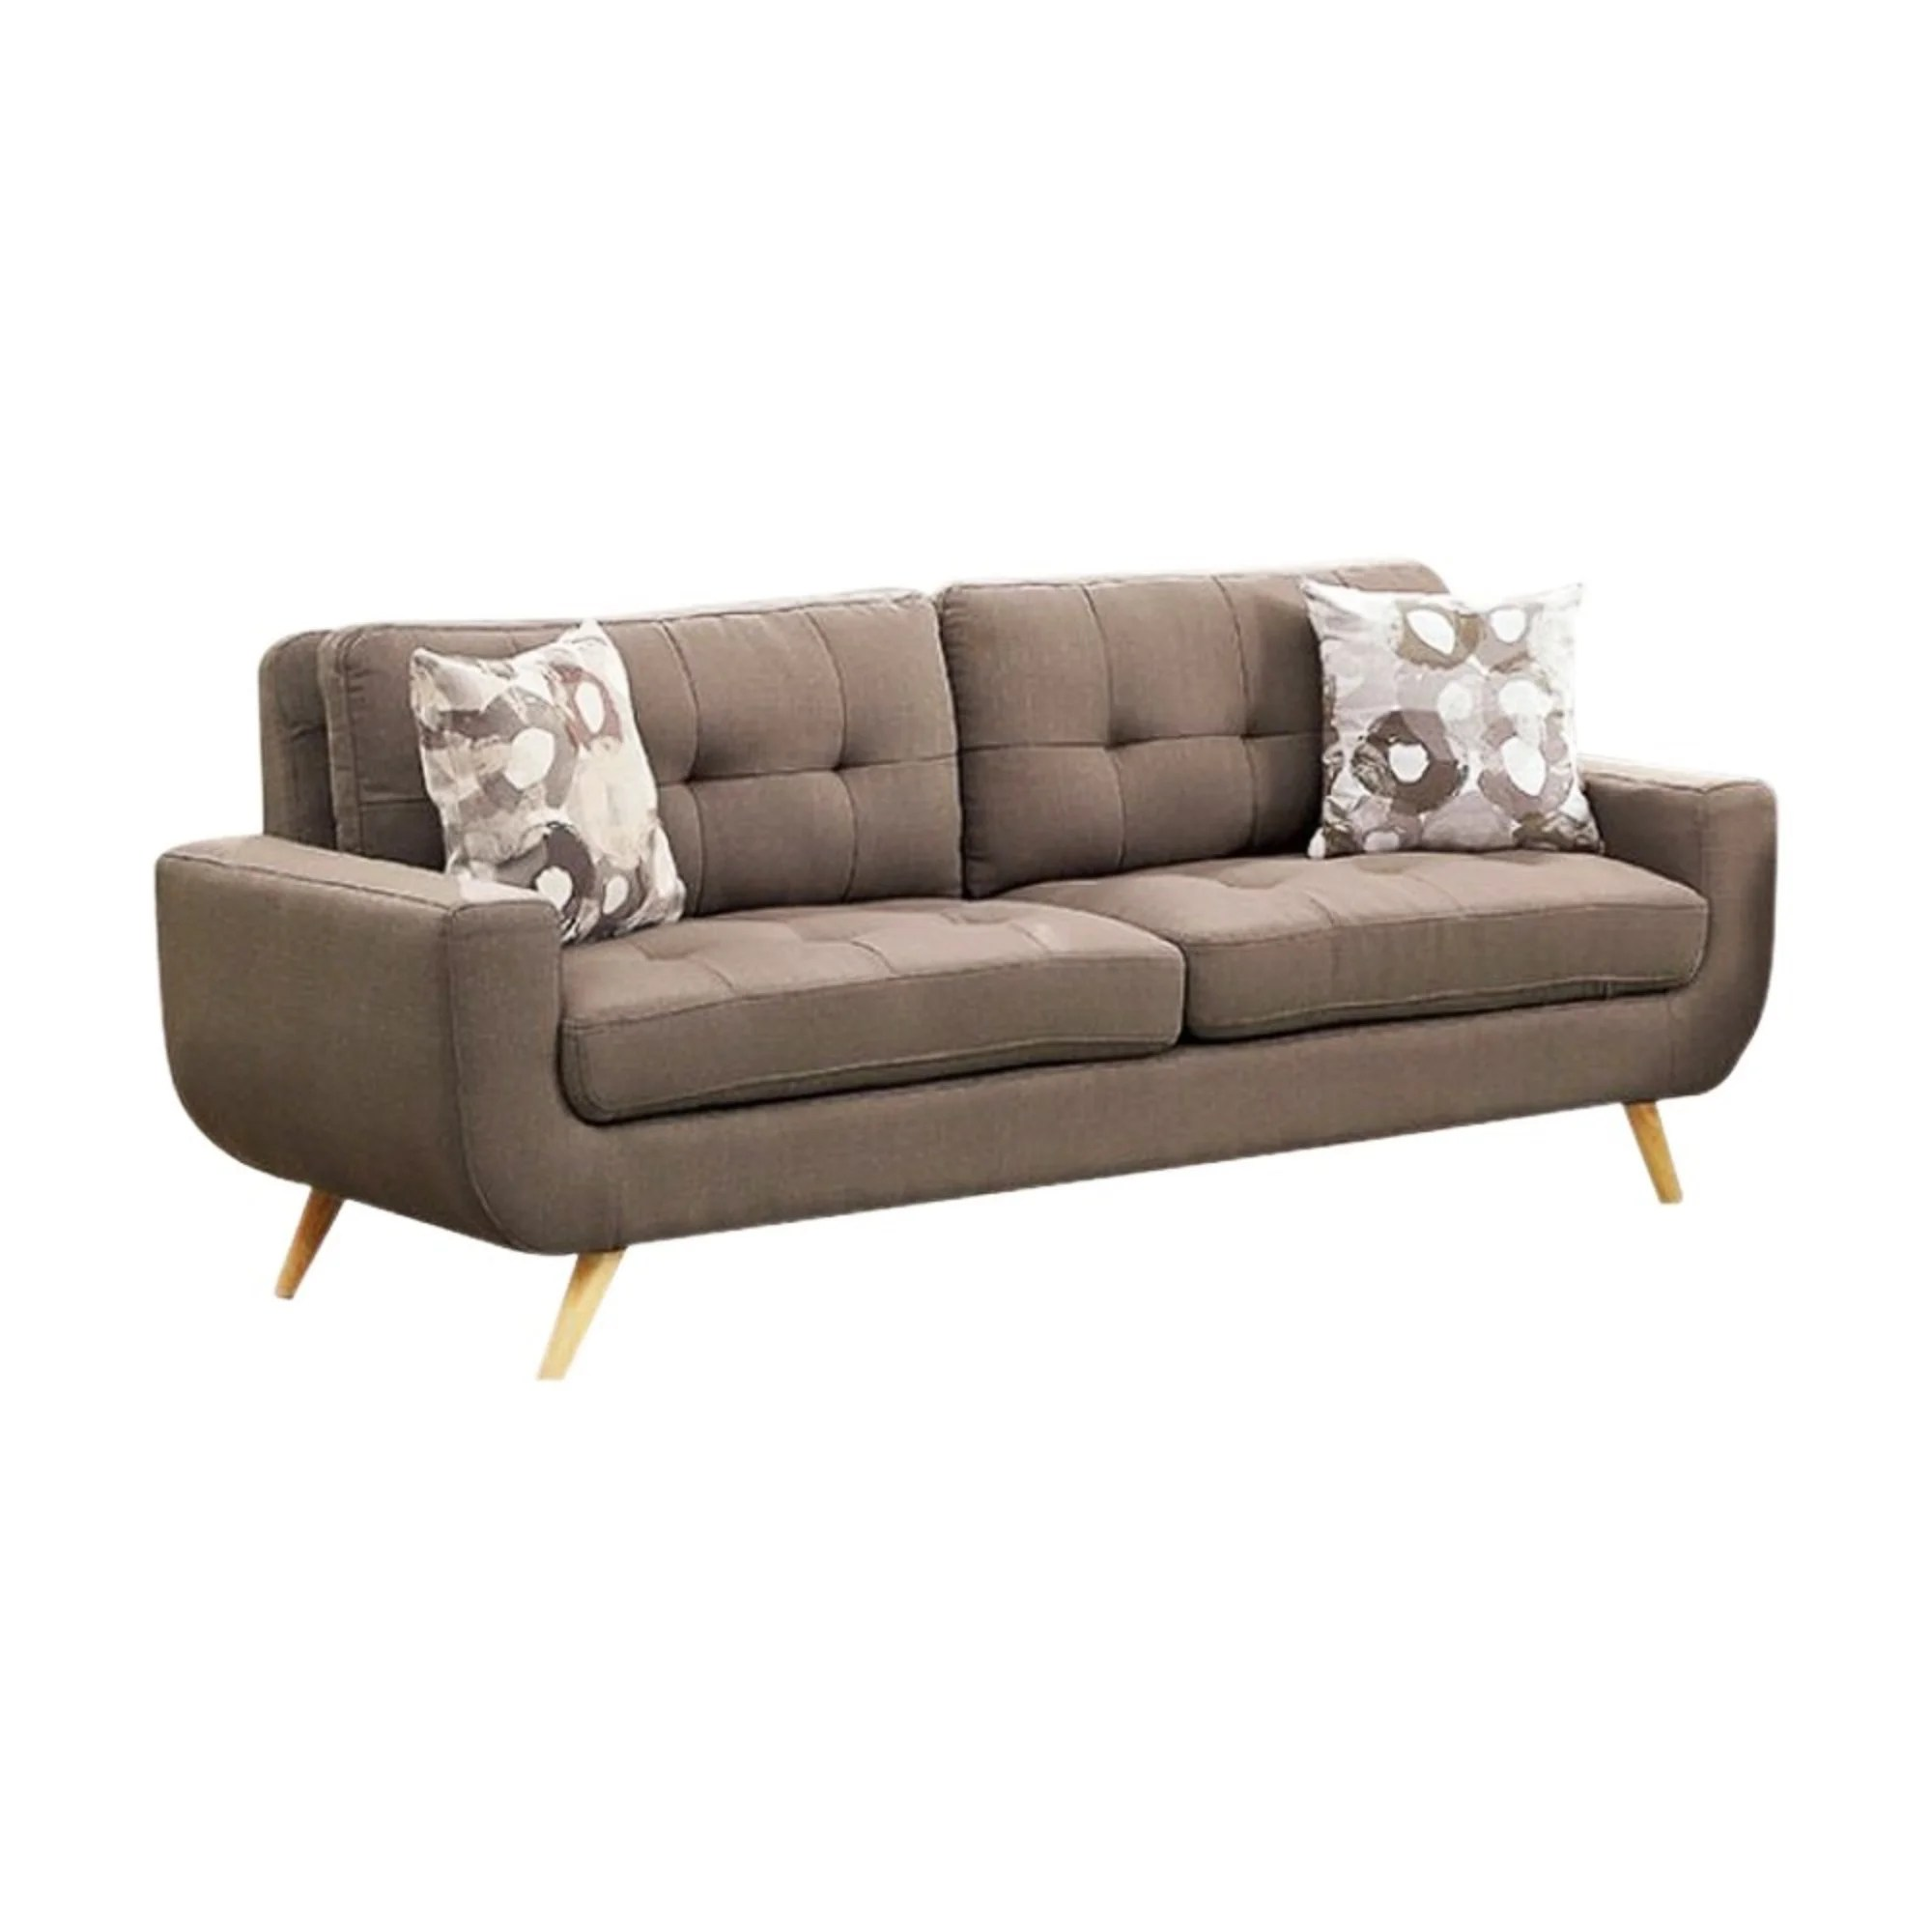 U Sofa Walton Bay Tufted Sofa With U Shaped Base